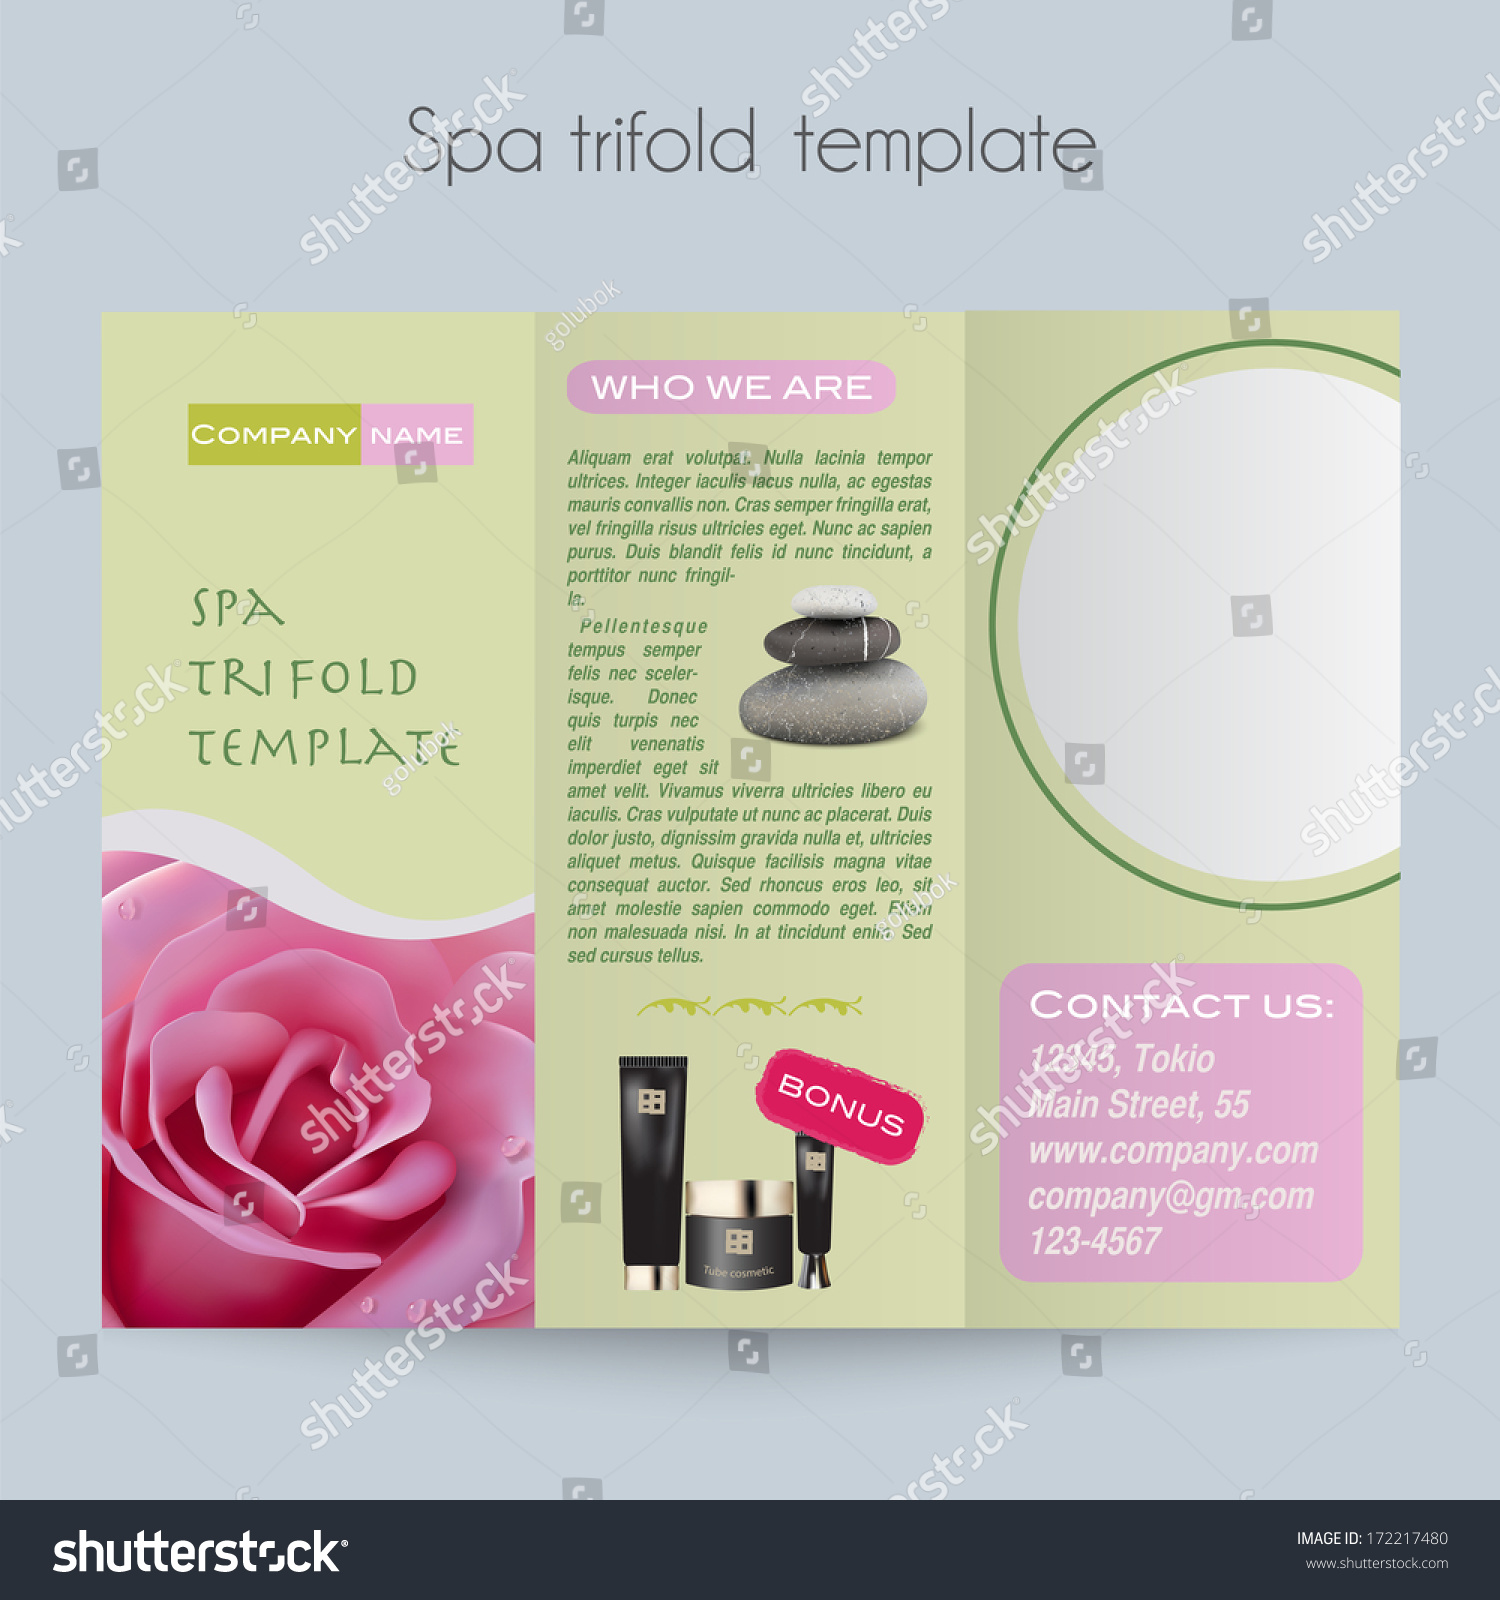 beauty brochure templates - beauty spa salon trifold mock template stock vector